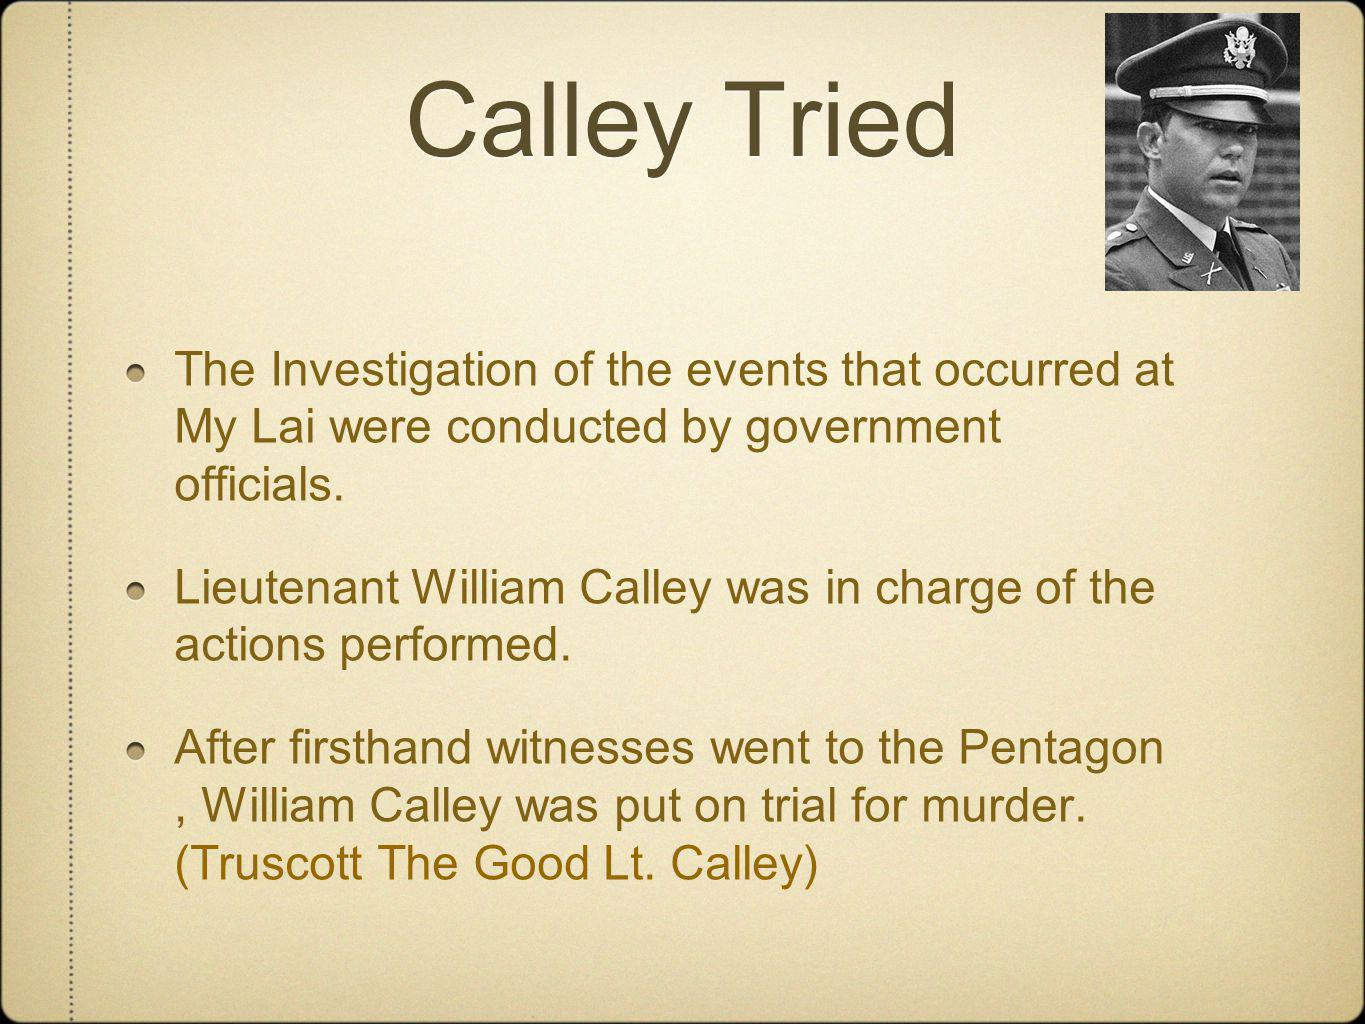 Calley Tried The Investigation of the events that occurred at My Lai were conducted by government officials.